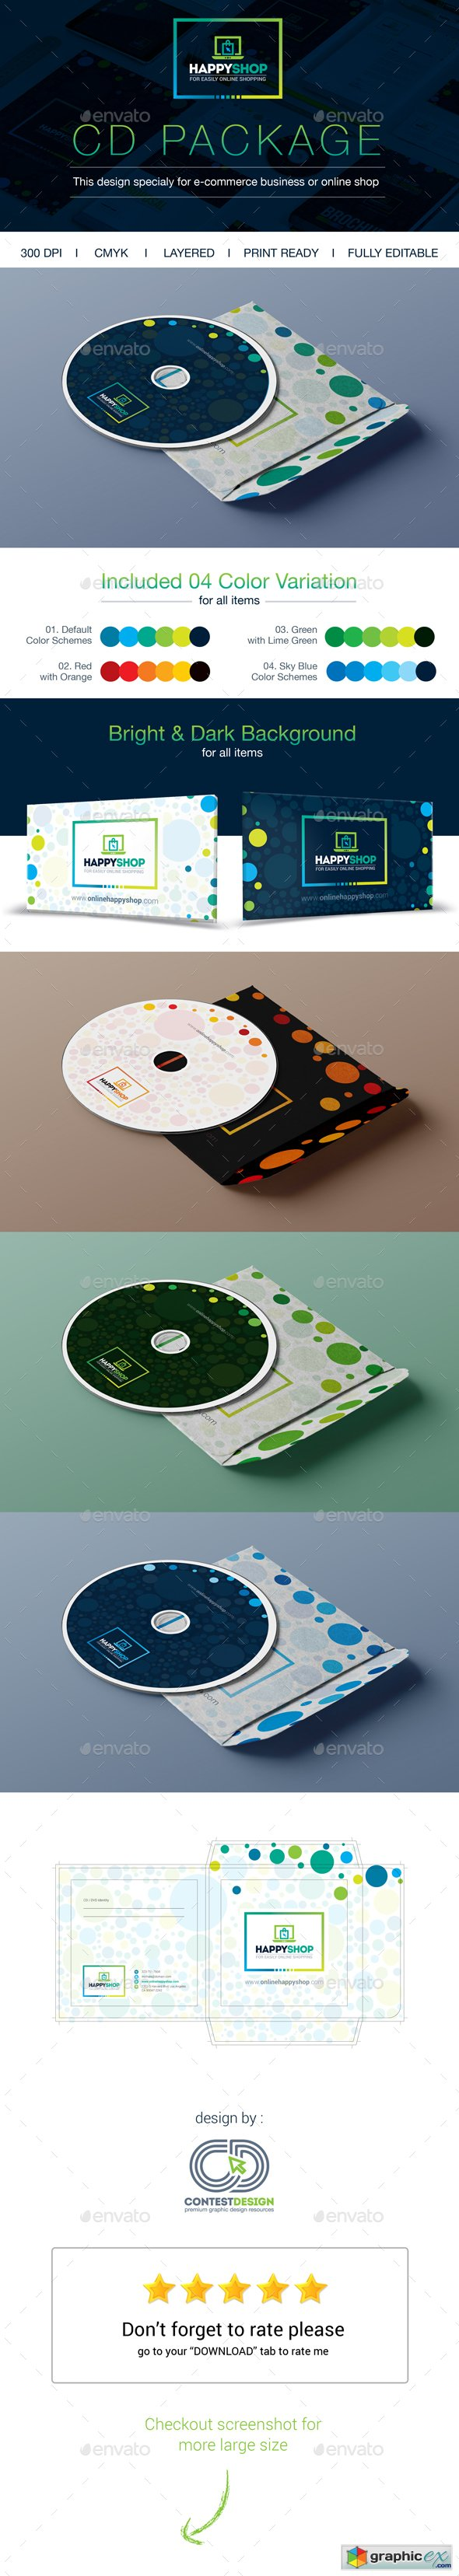 HappyShop : E-Commerce Business CD Package